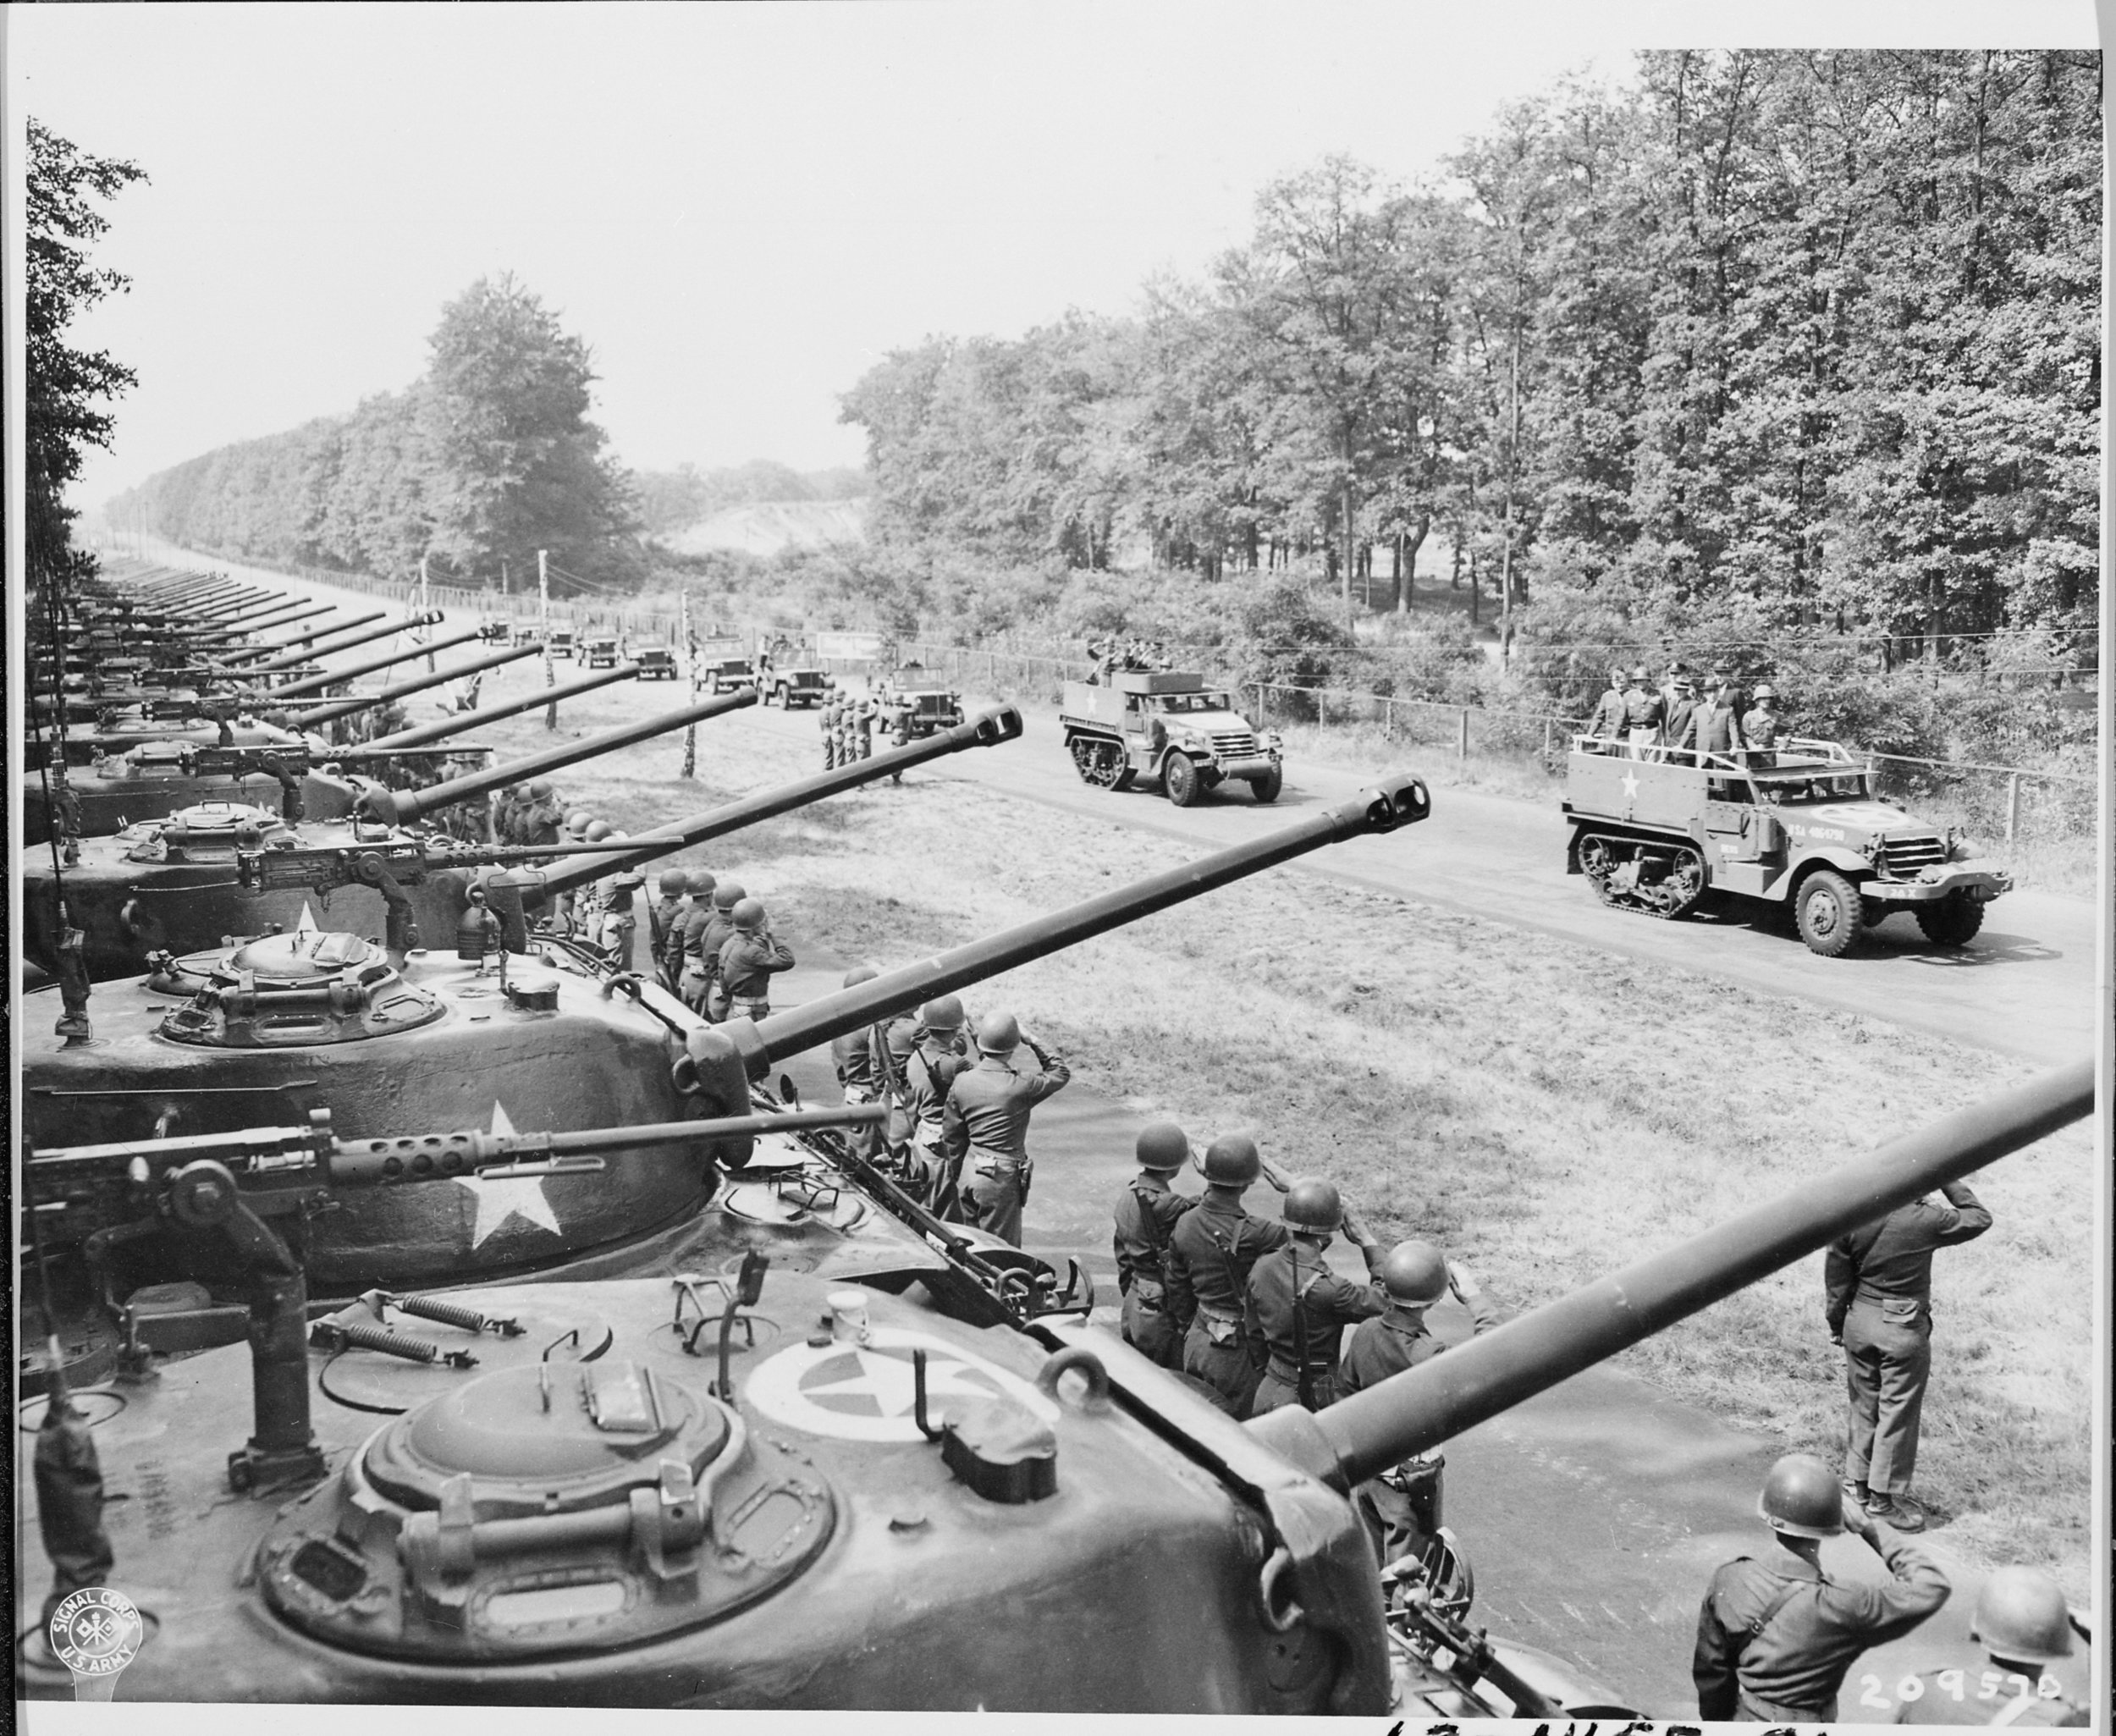 Secretary of War Henry Stimson inspects the 2nd Armored Division in Berlin during the Potsdam Conference.